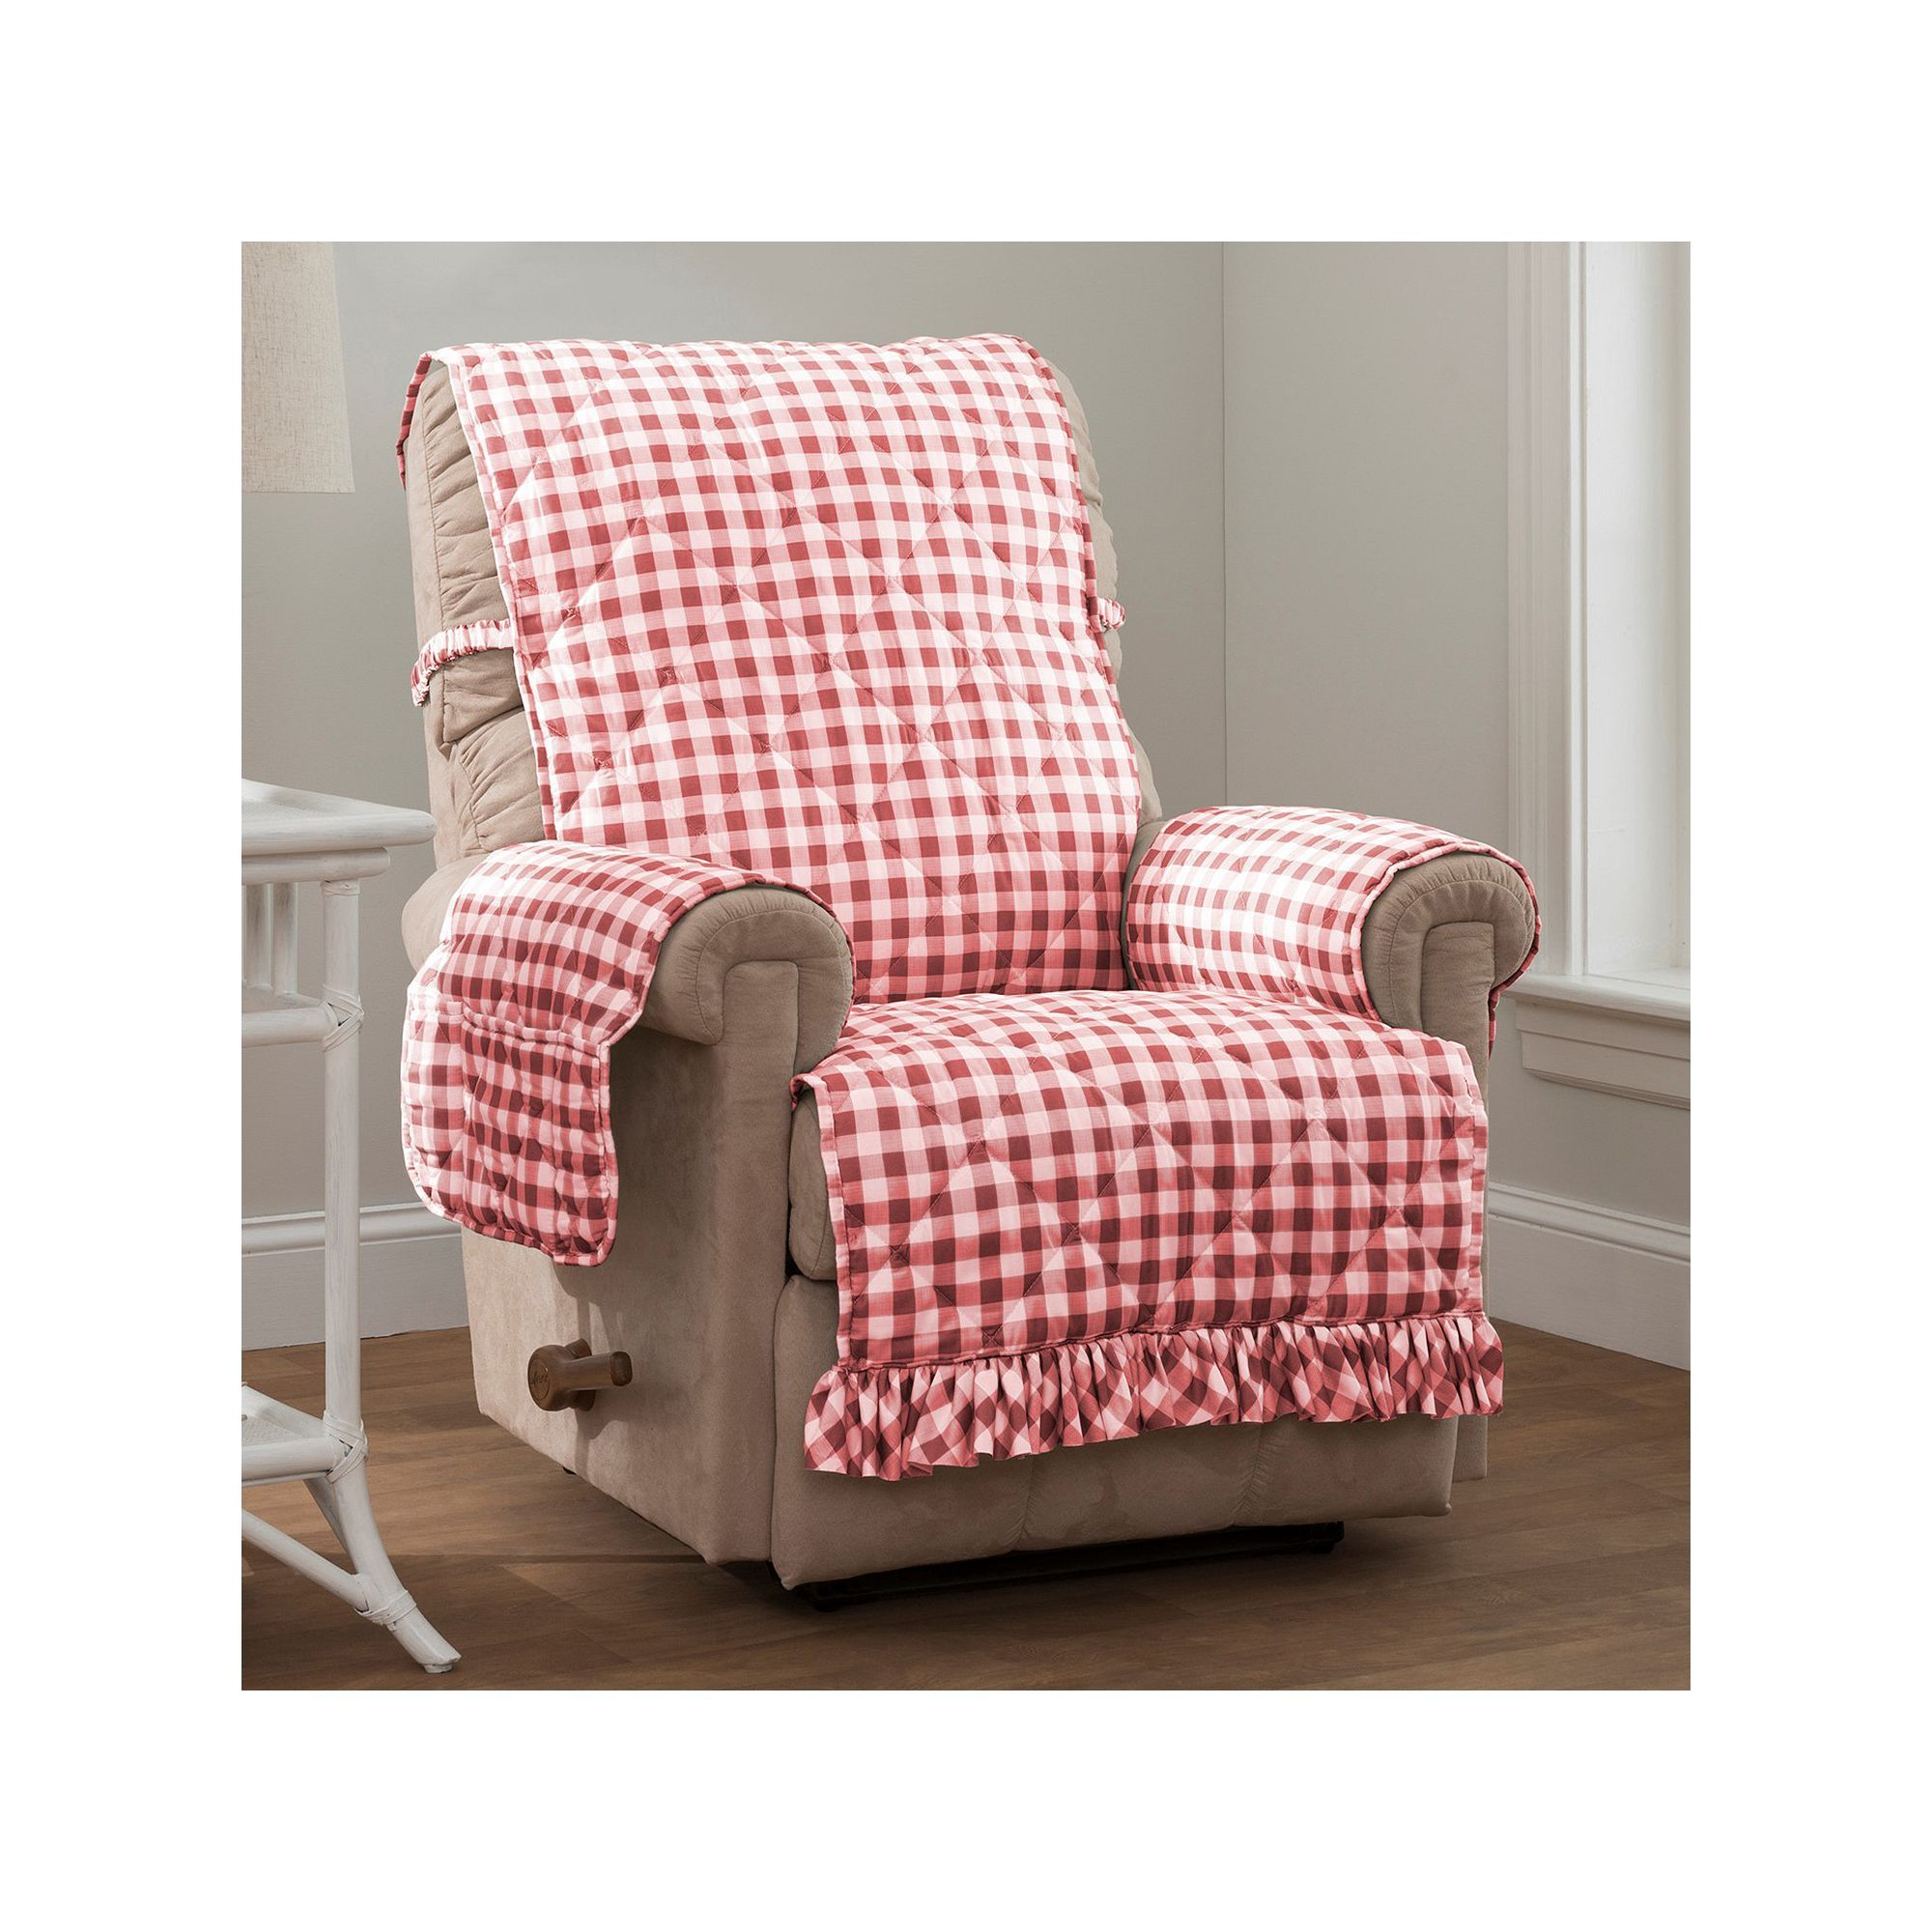 charming leather slipcovers slipcover petite cheap your living recliners small perfect recliner chair for store red room